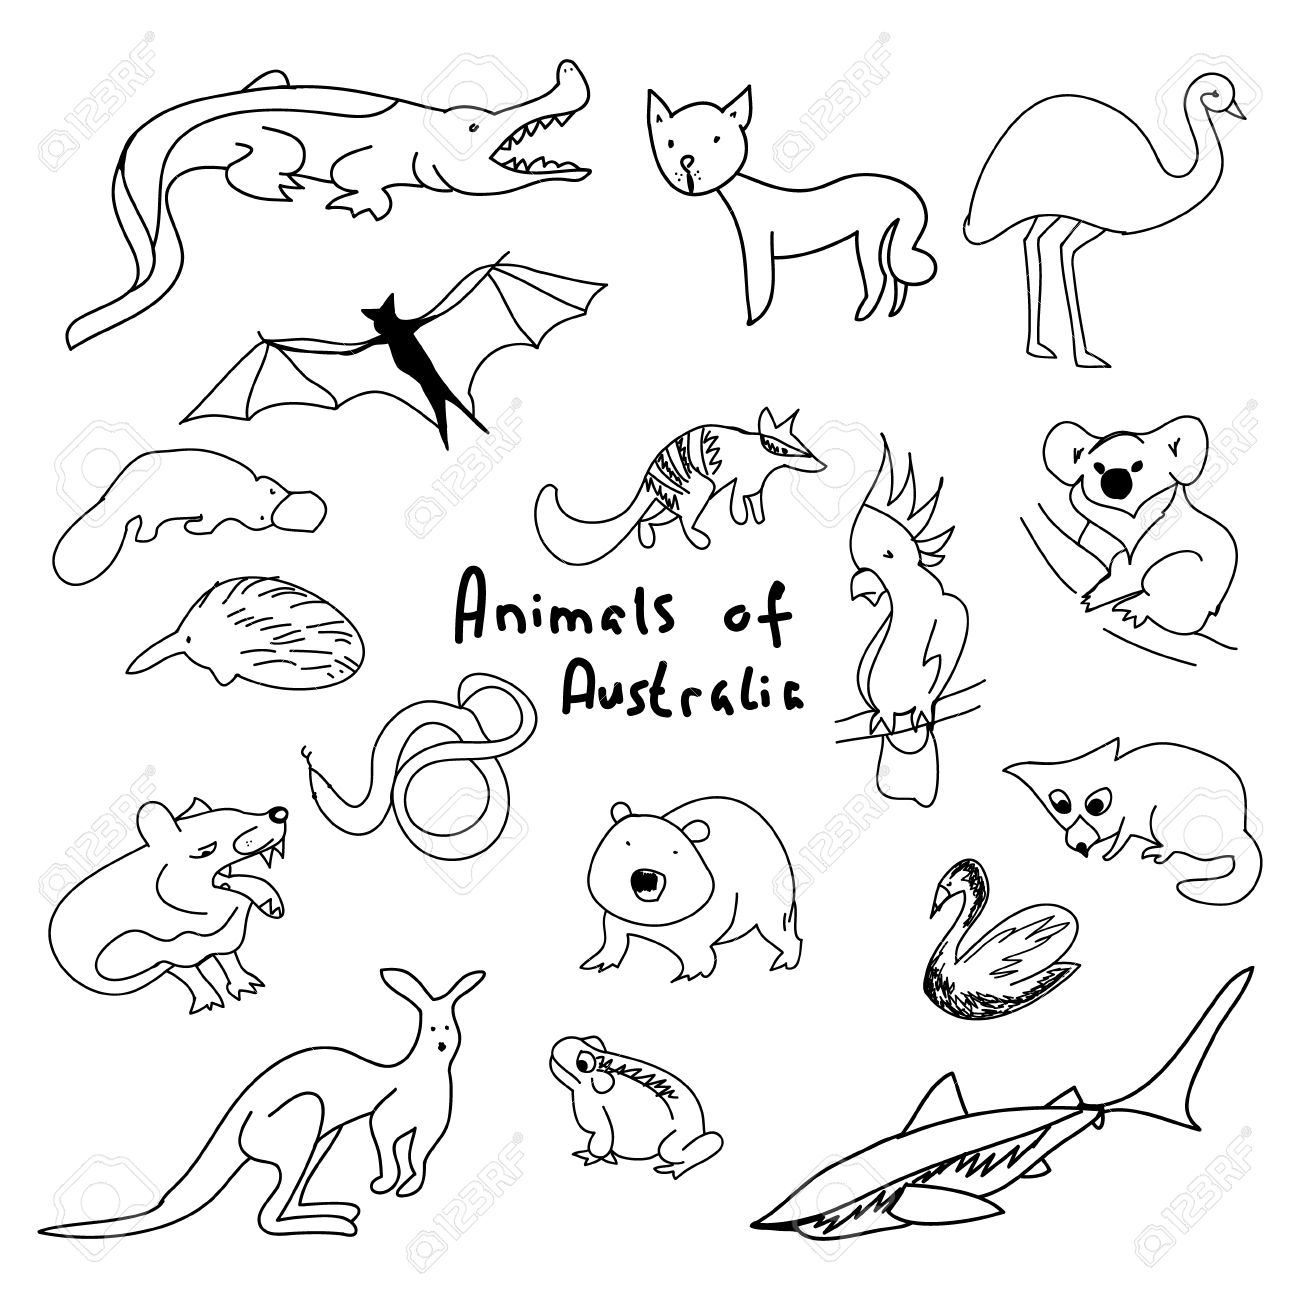 Australian Animals Drawings Animals Of Australia A Set Of Simple Drawings Cartoon Animals